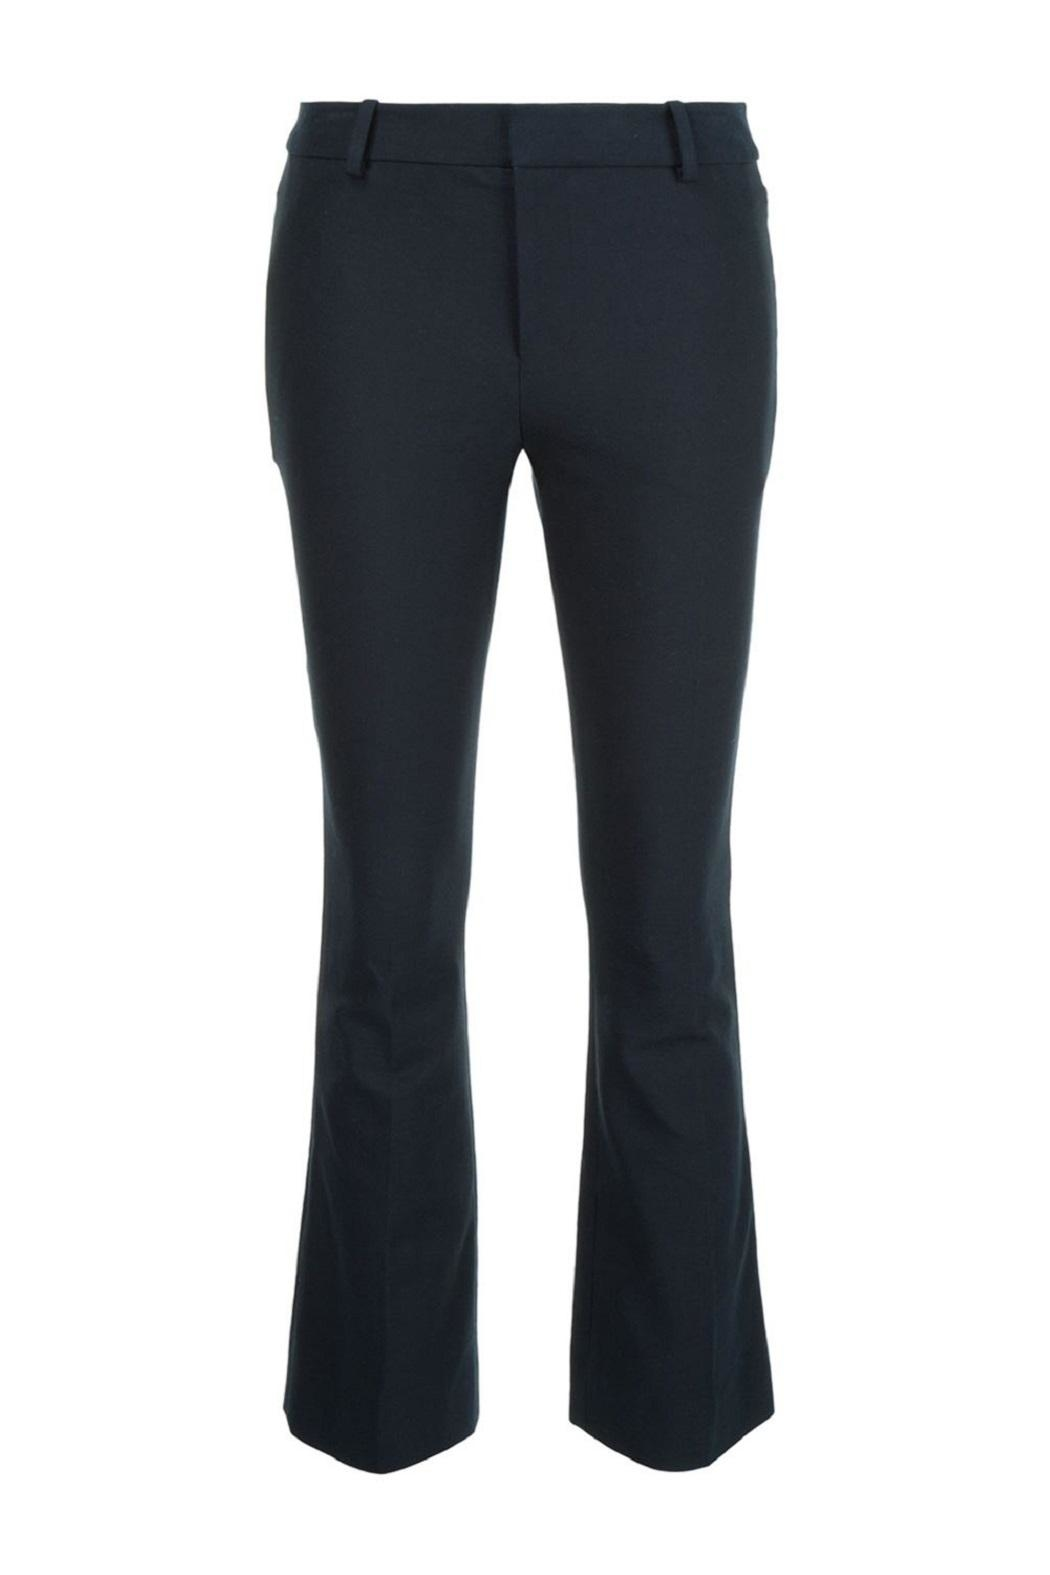 10 Crosby Derek Lam Cropped Flare Trousers - Main Image